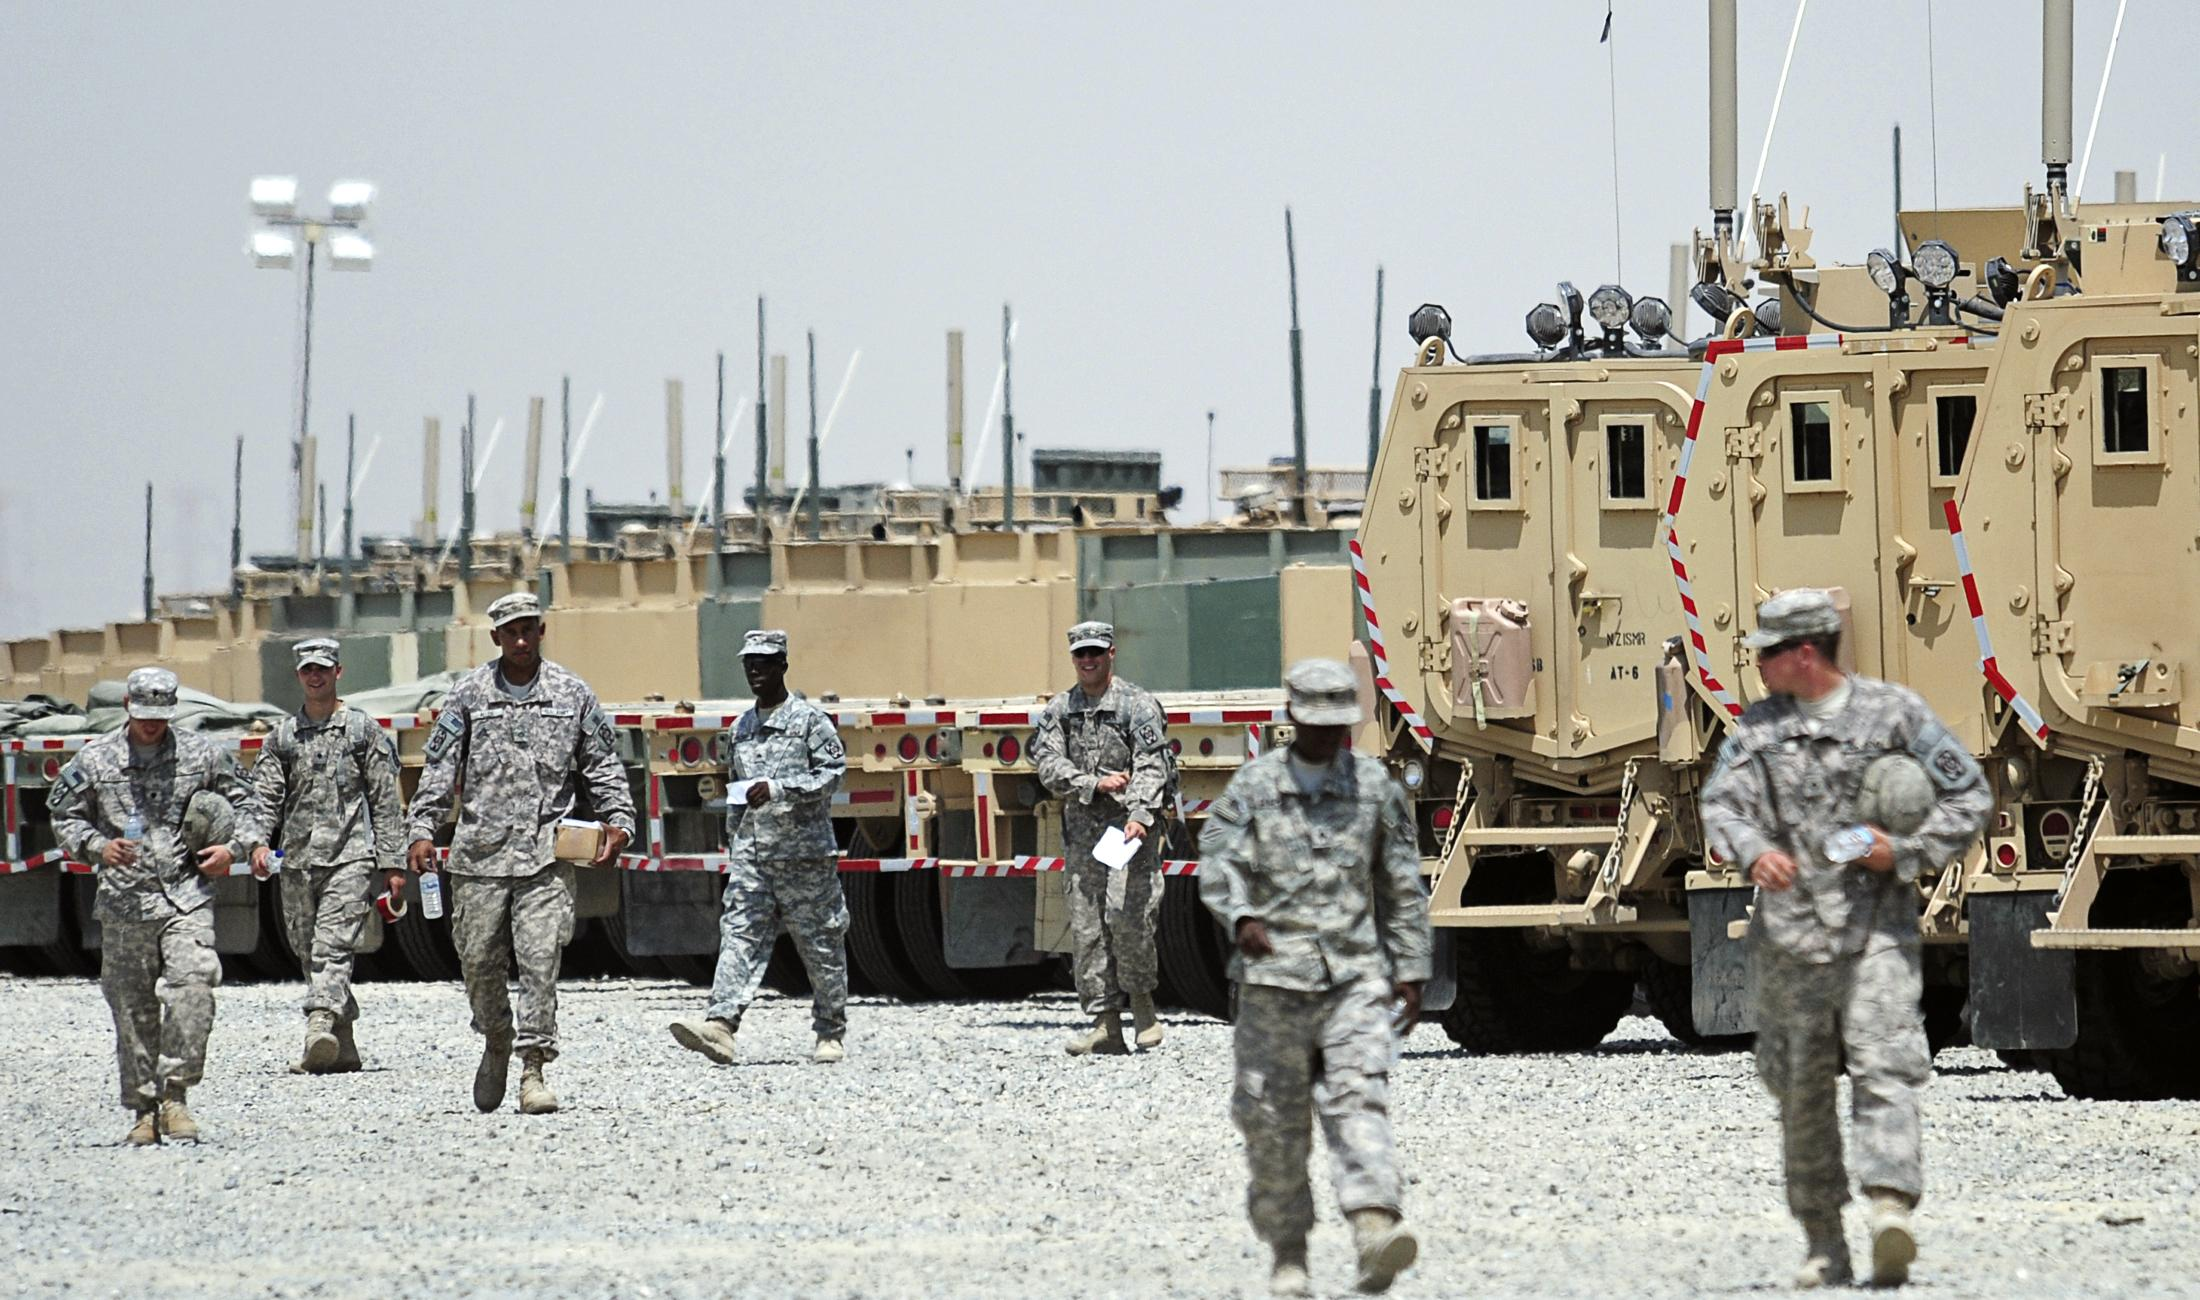 Kuwait receives letter saying all U.S. forces to leave in three...